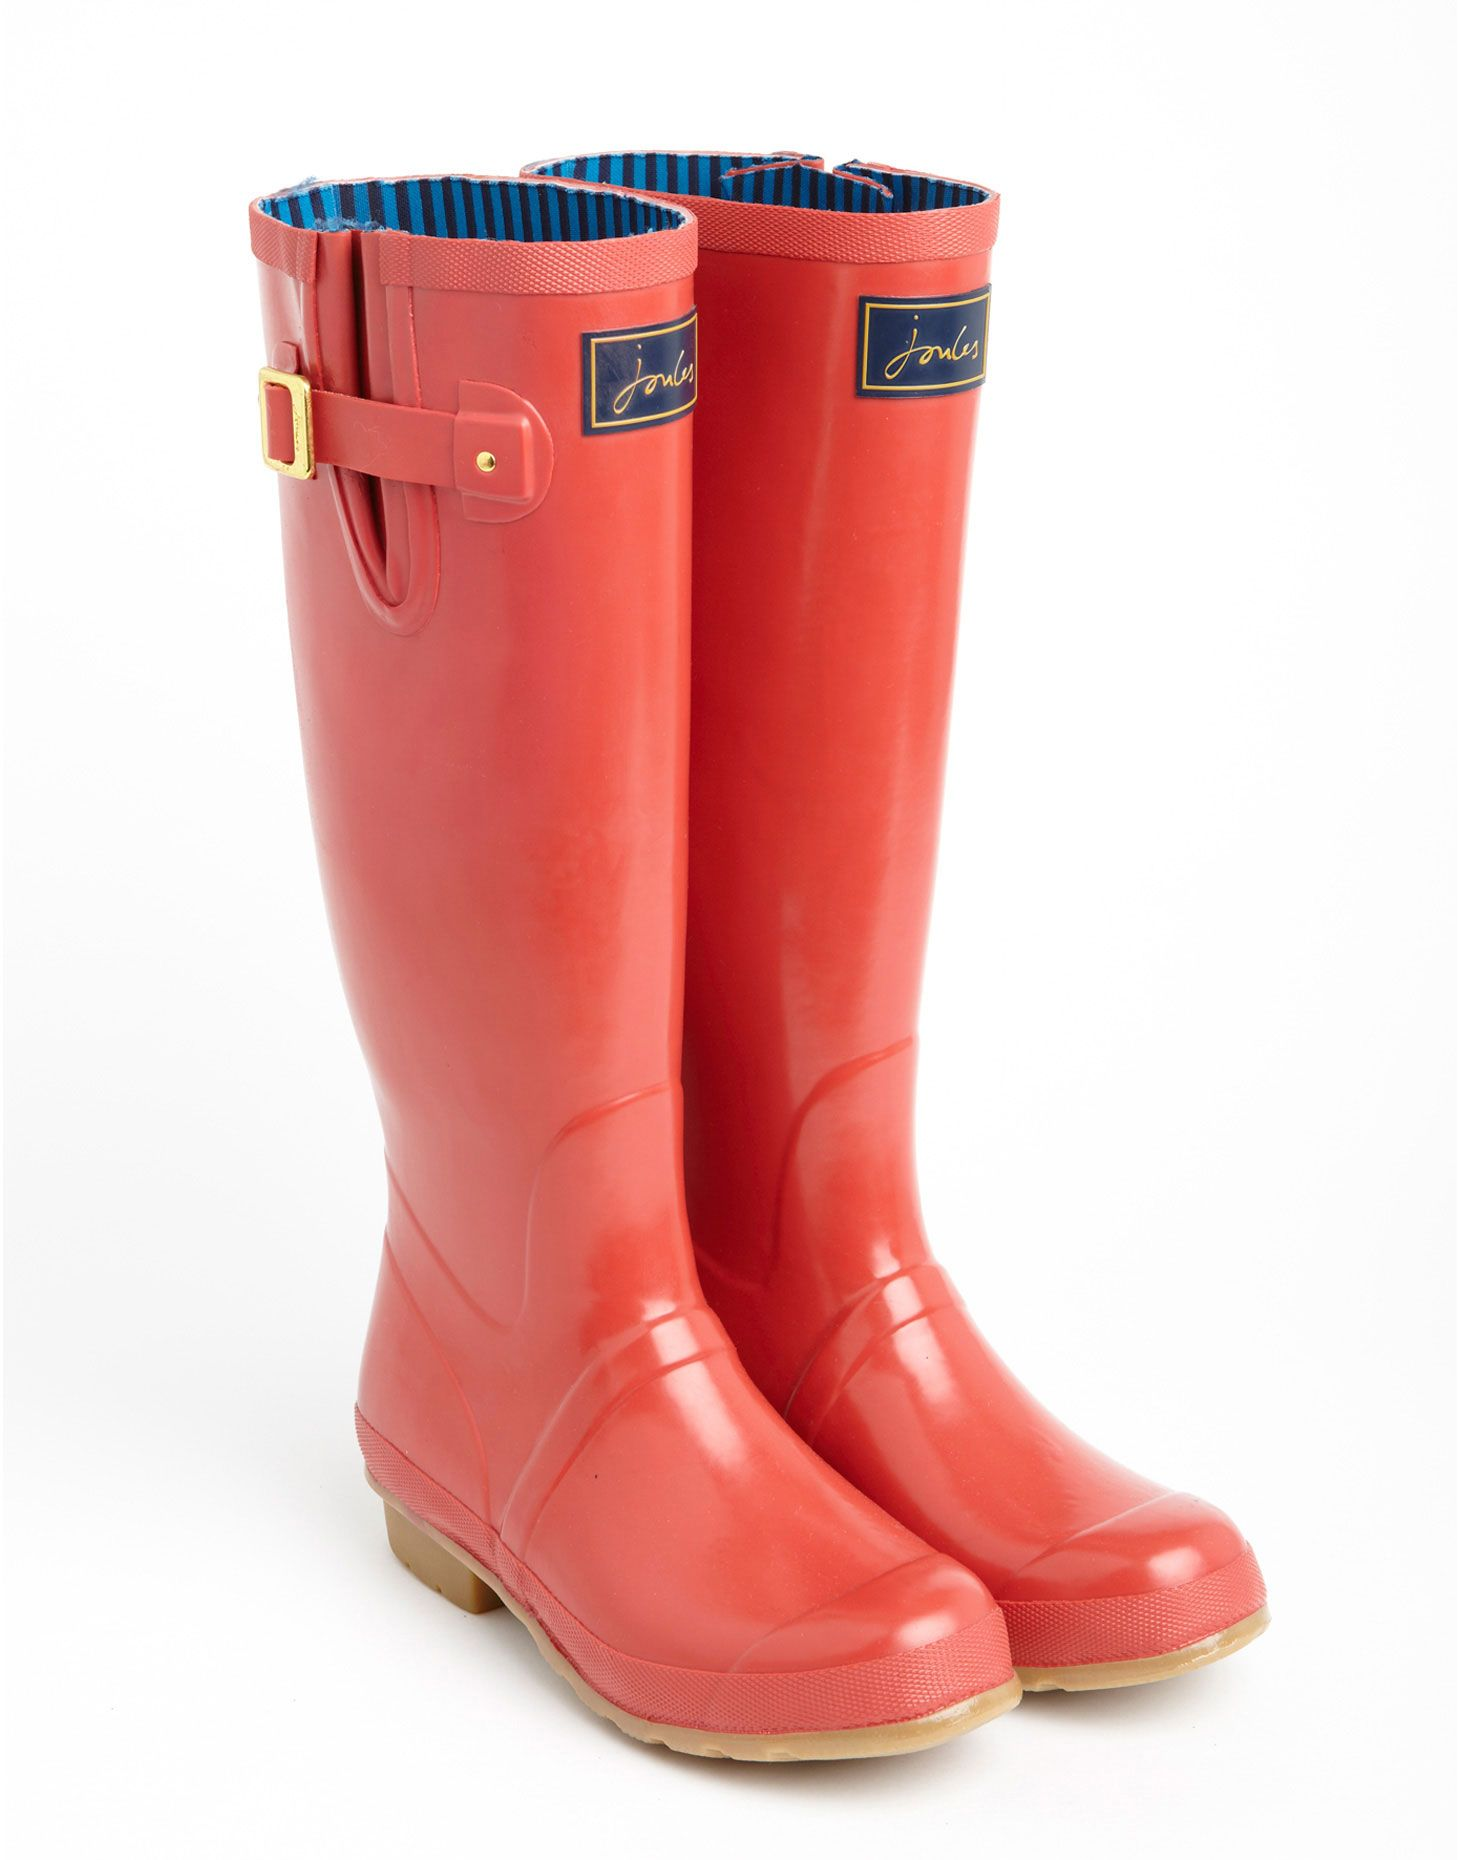 17 Best images about Rain Season on Pinterest | Rain, Boots and Toms